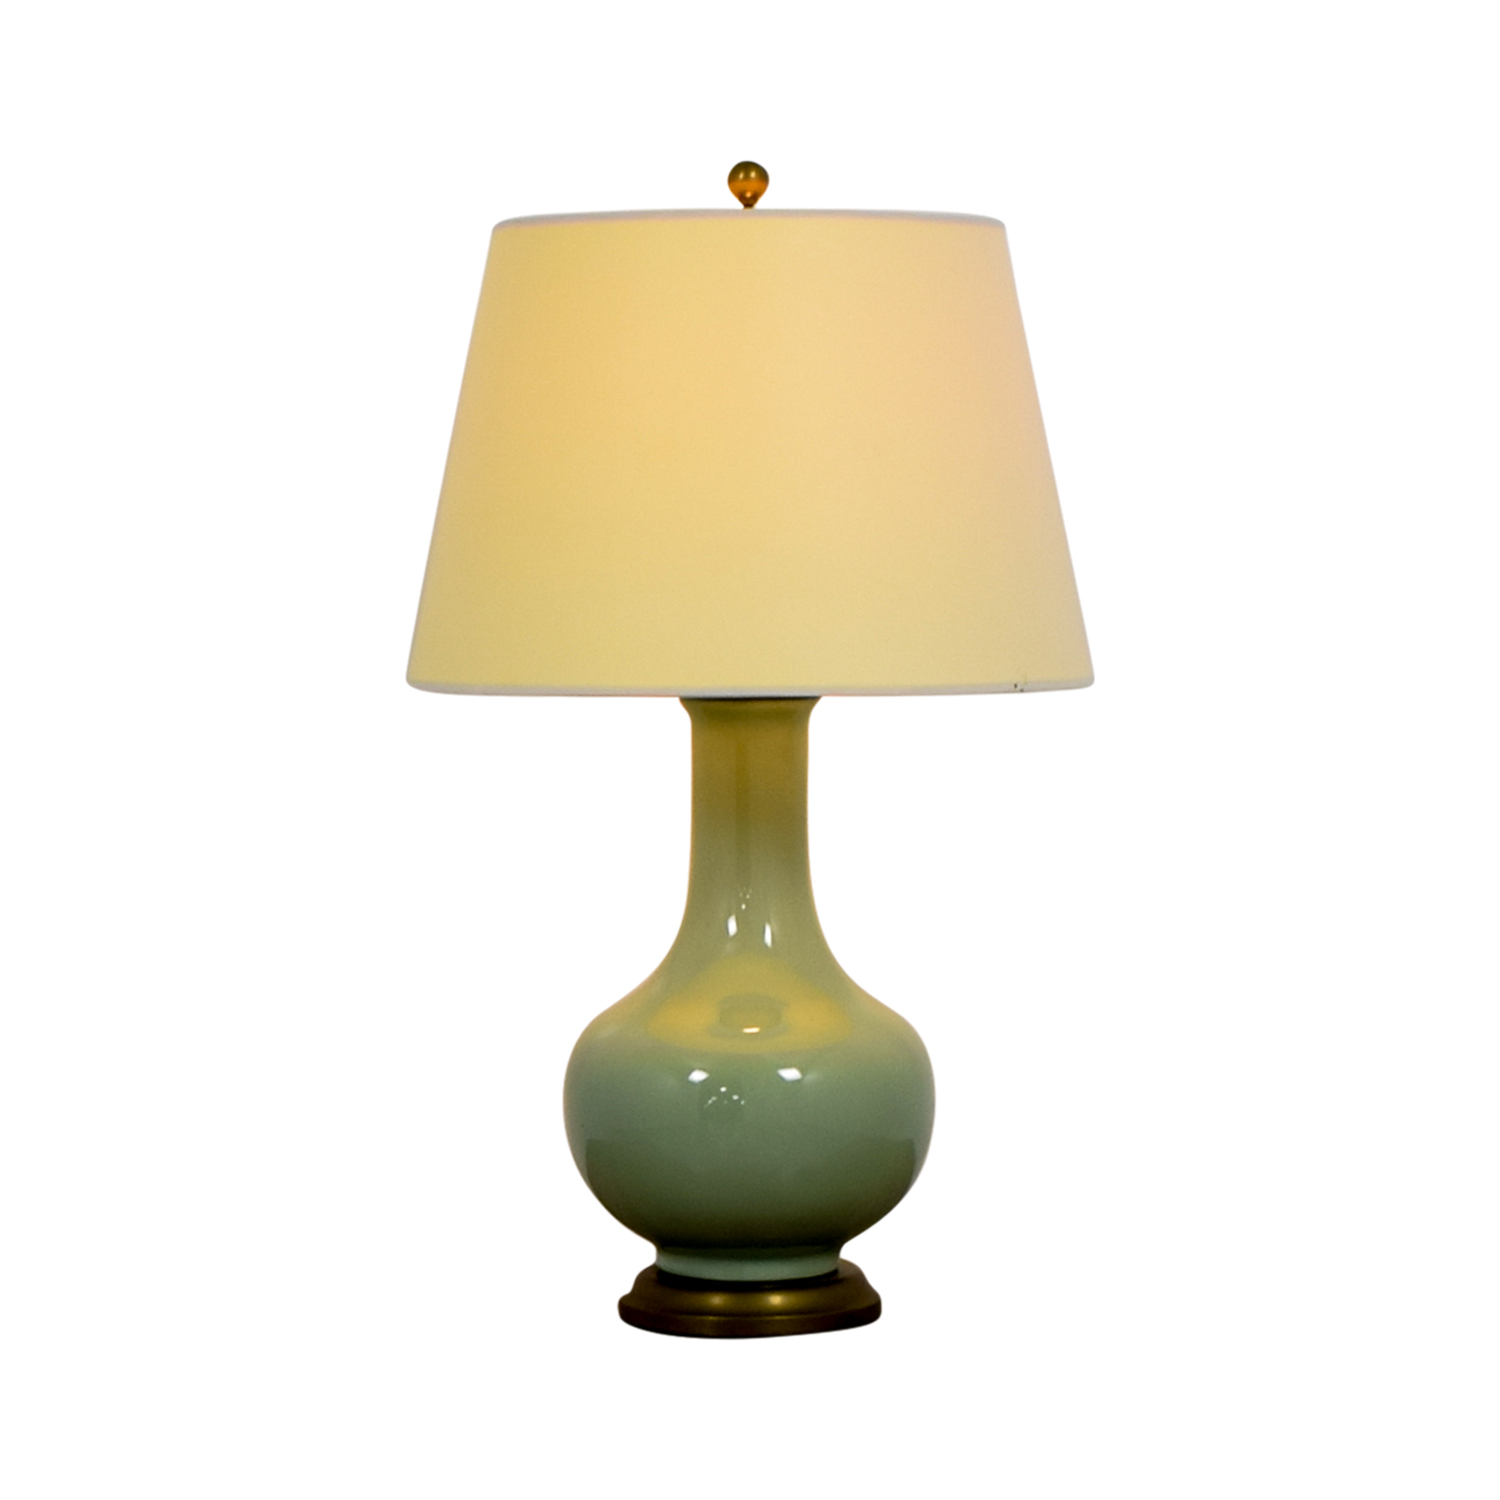 Williams Sonoma Home Williams Sonoma Home Mint Green Ceramic and Brass Table Lamp discount